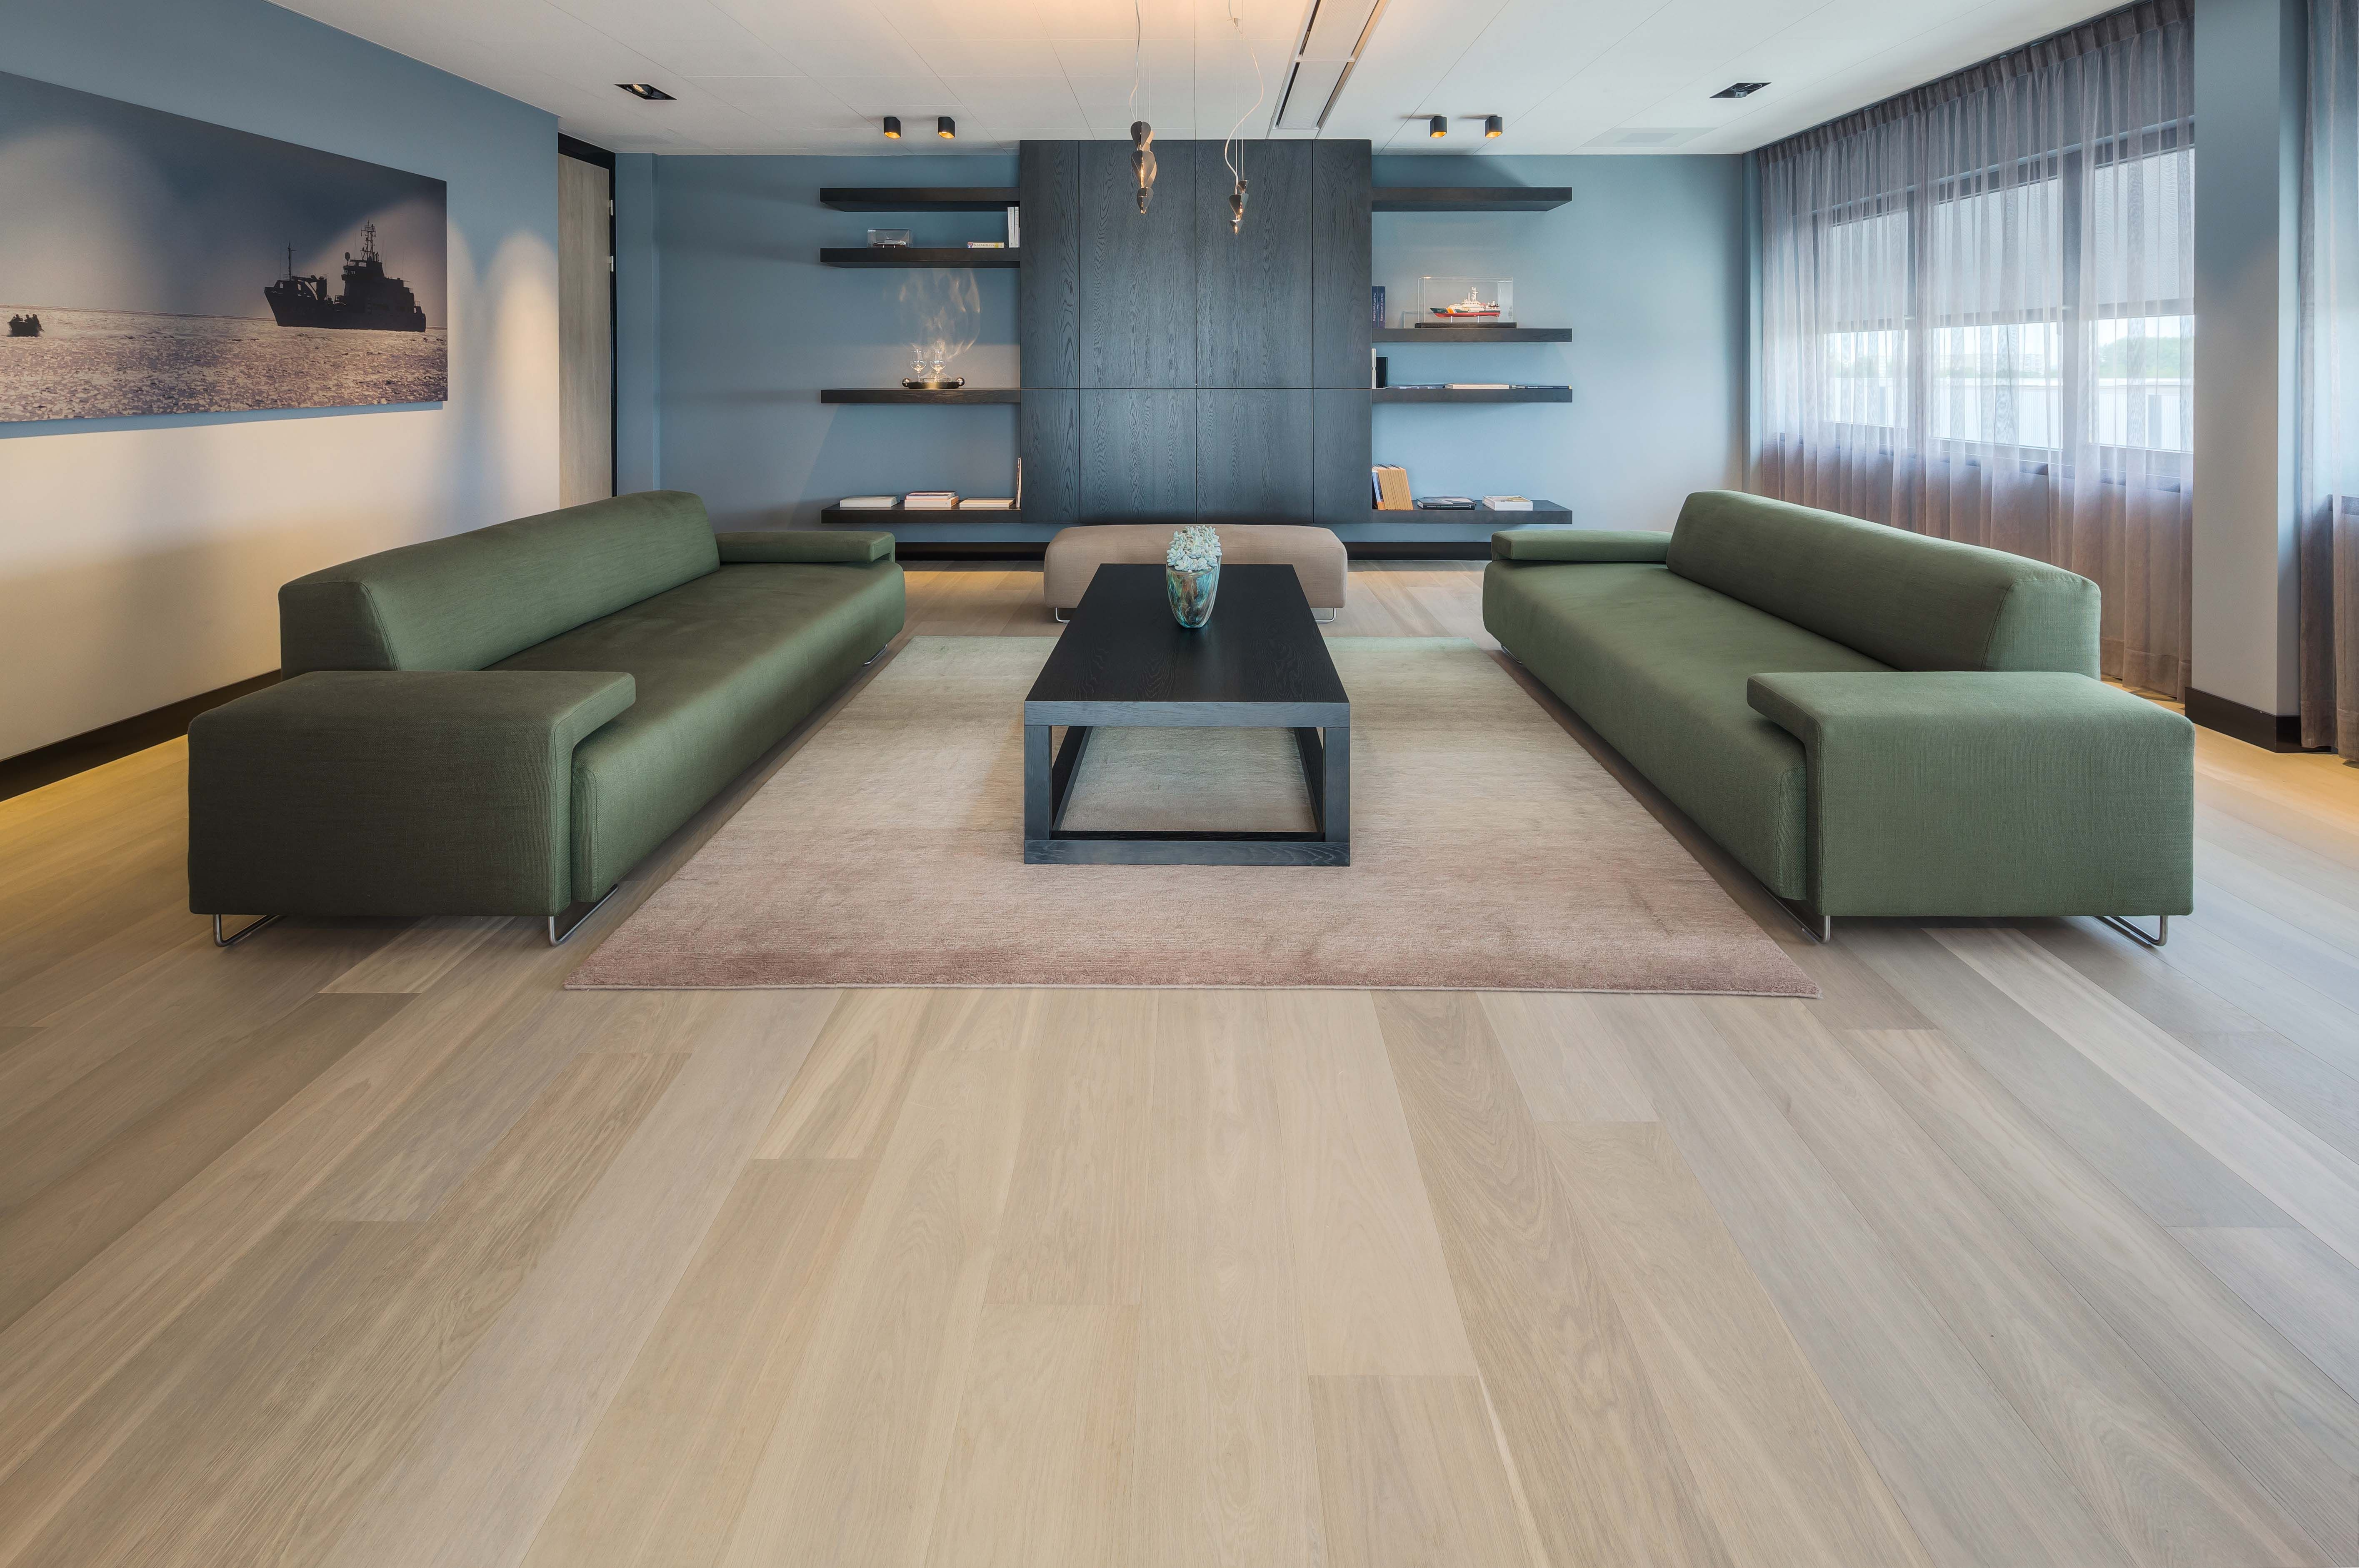 The flooring that S&D provides is guaranteed for life and